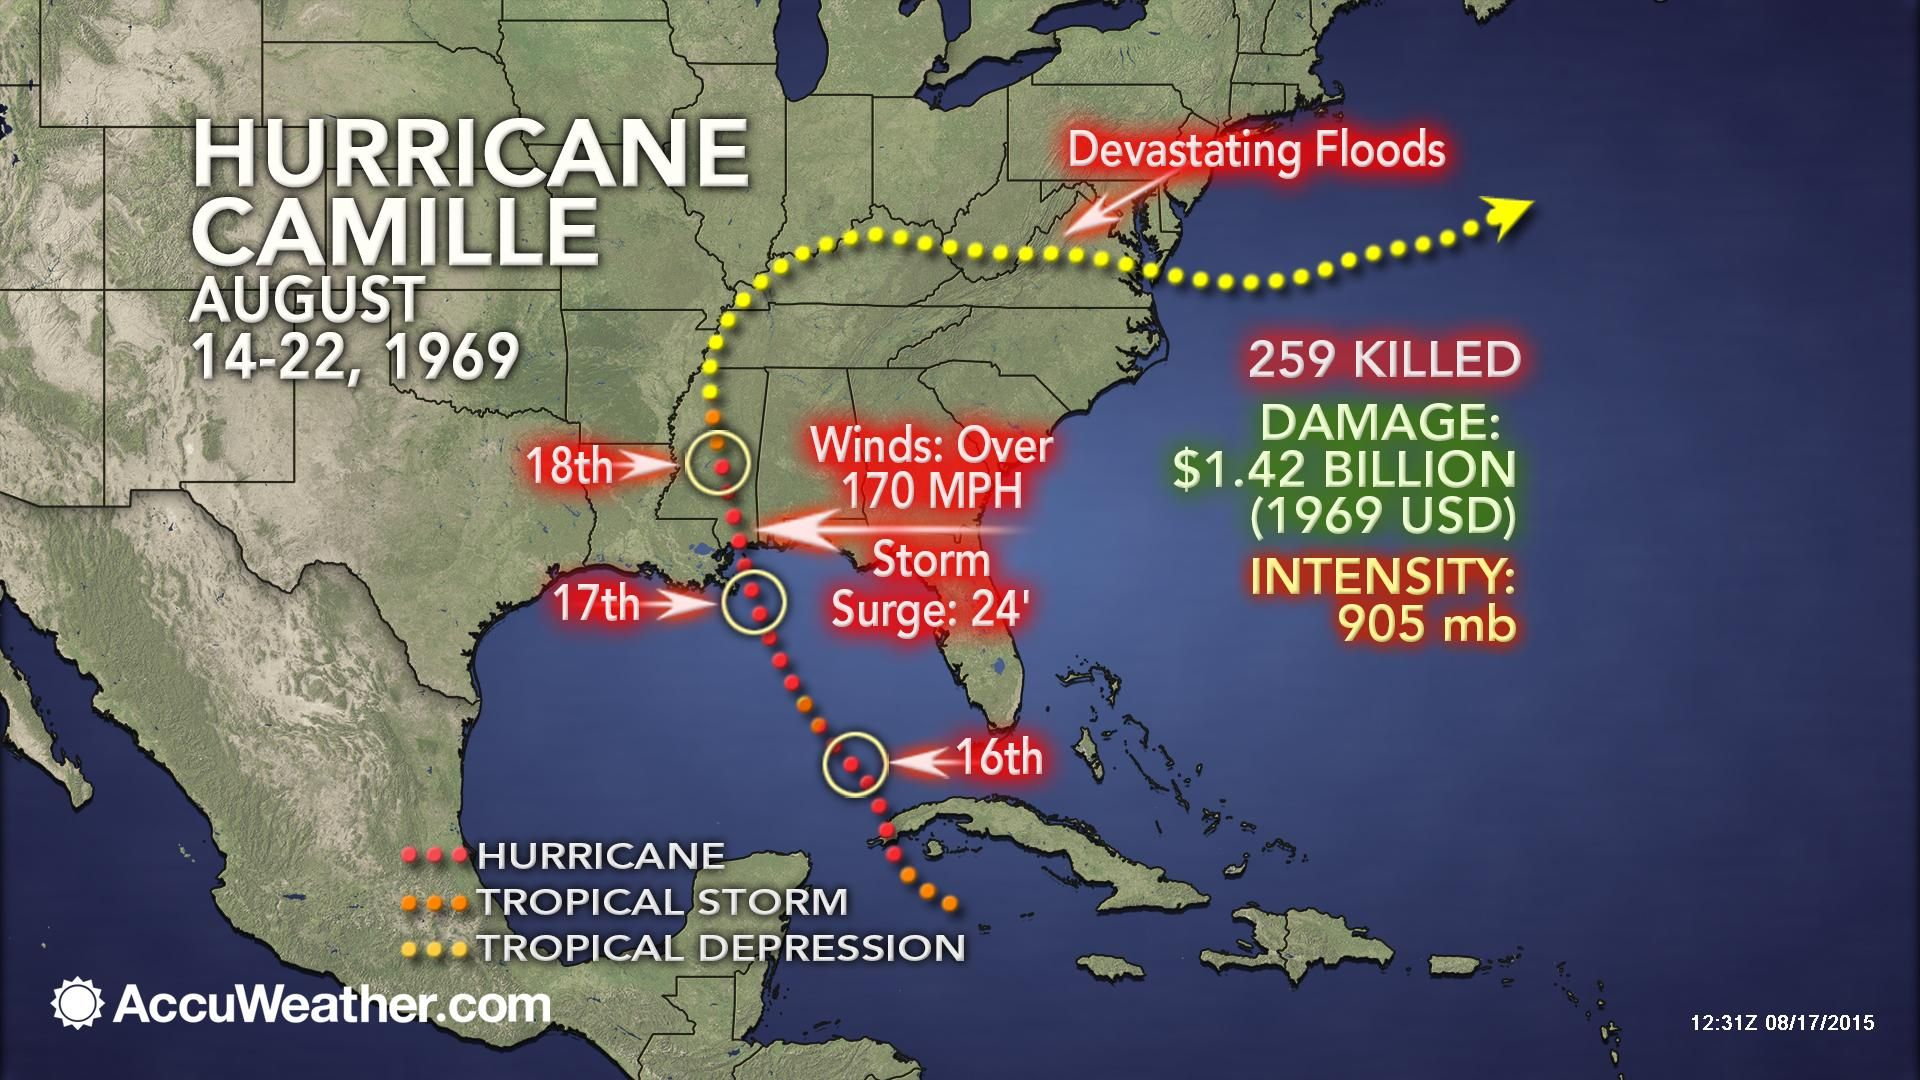 From Accuweather Weatherwhys Hurricane Camille Became The One Of The Most Intense Hurricanes To Impact The United Weather News Storm Surge Hurricane Camille